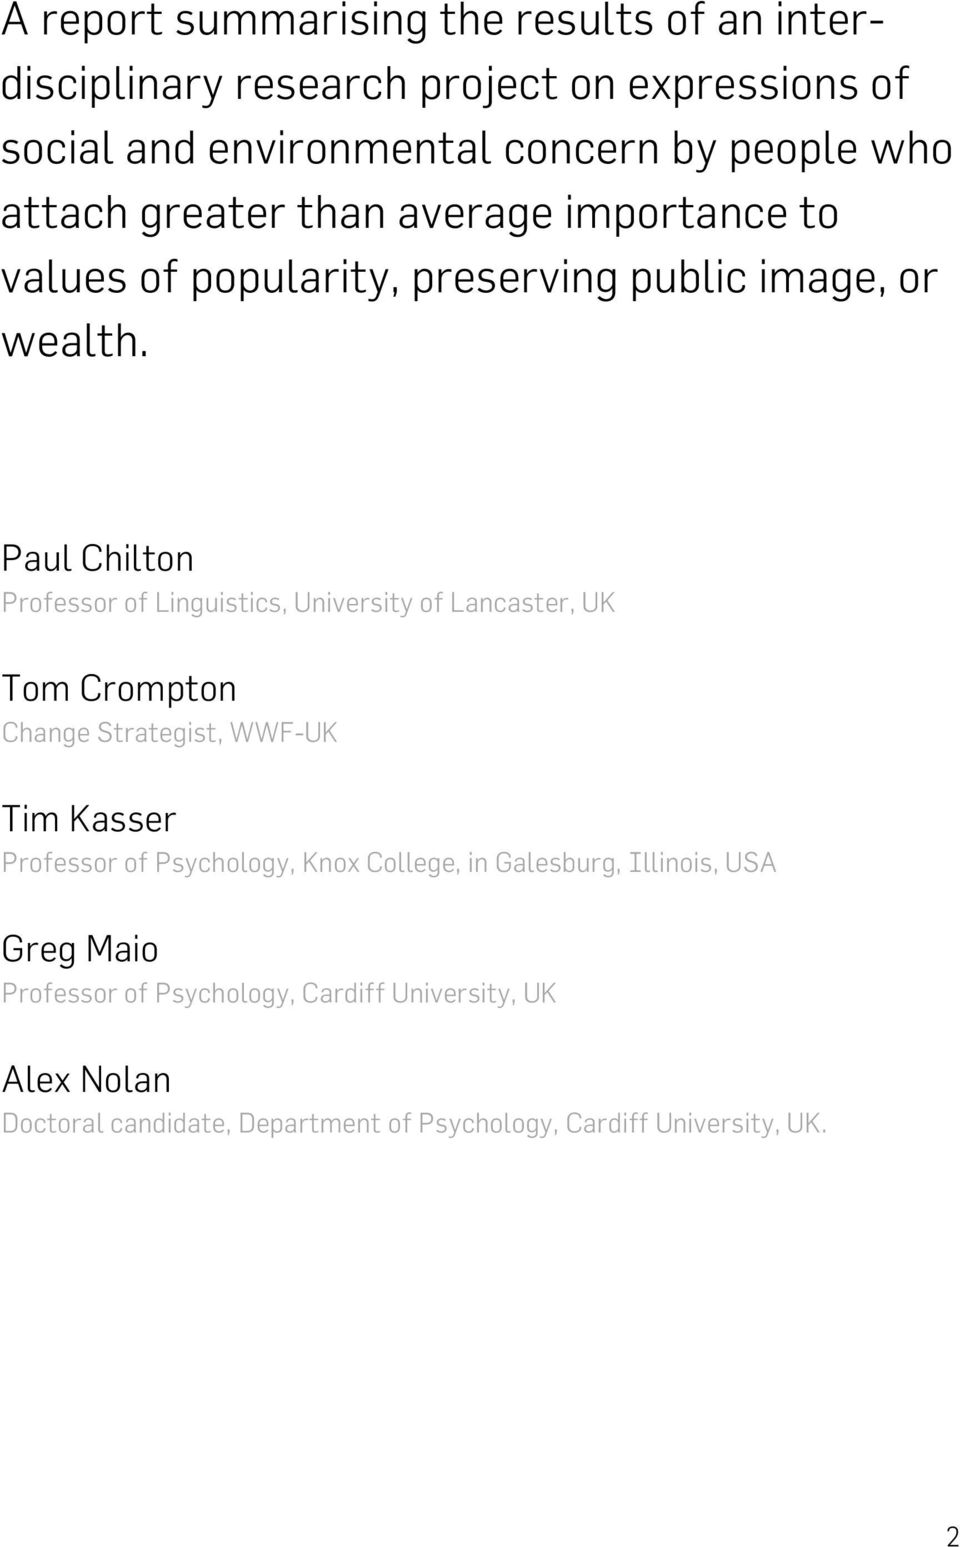 Paul Chilton Professor of Linguistics, University of Lancaster, UK Tom Crompton Change Strategist, WWF-UK Tim Kasser Professor of